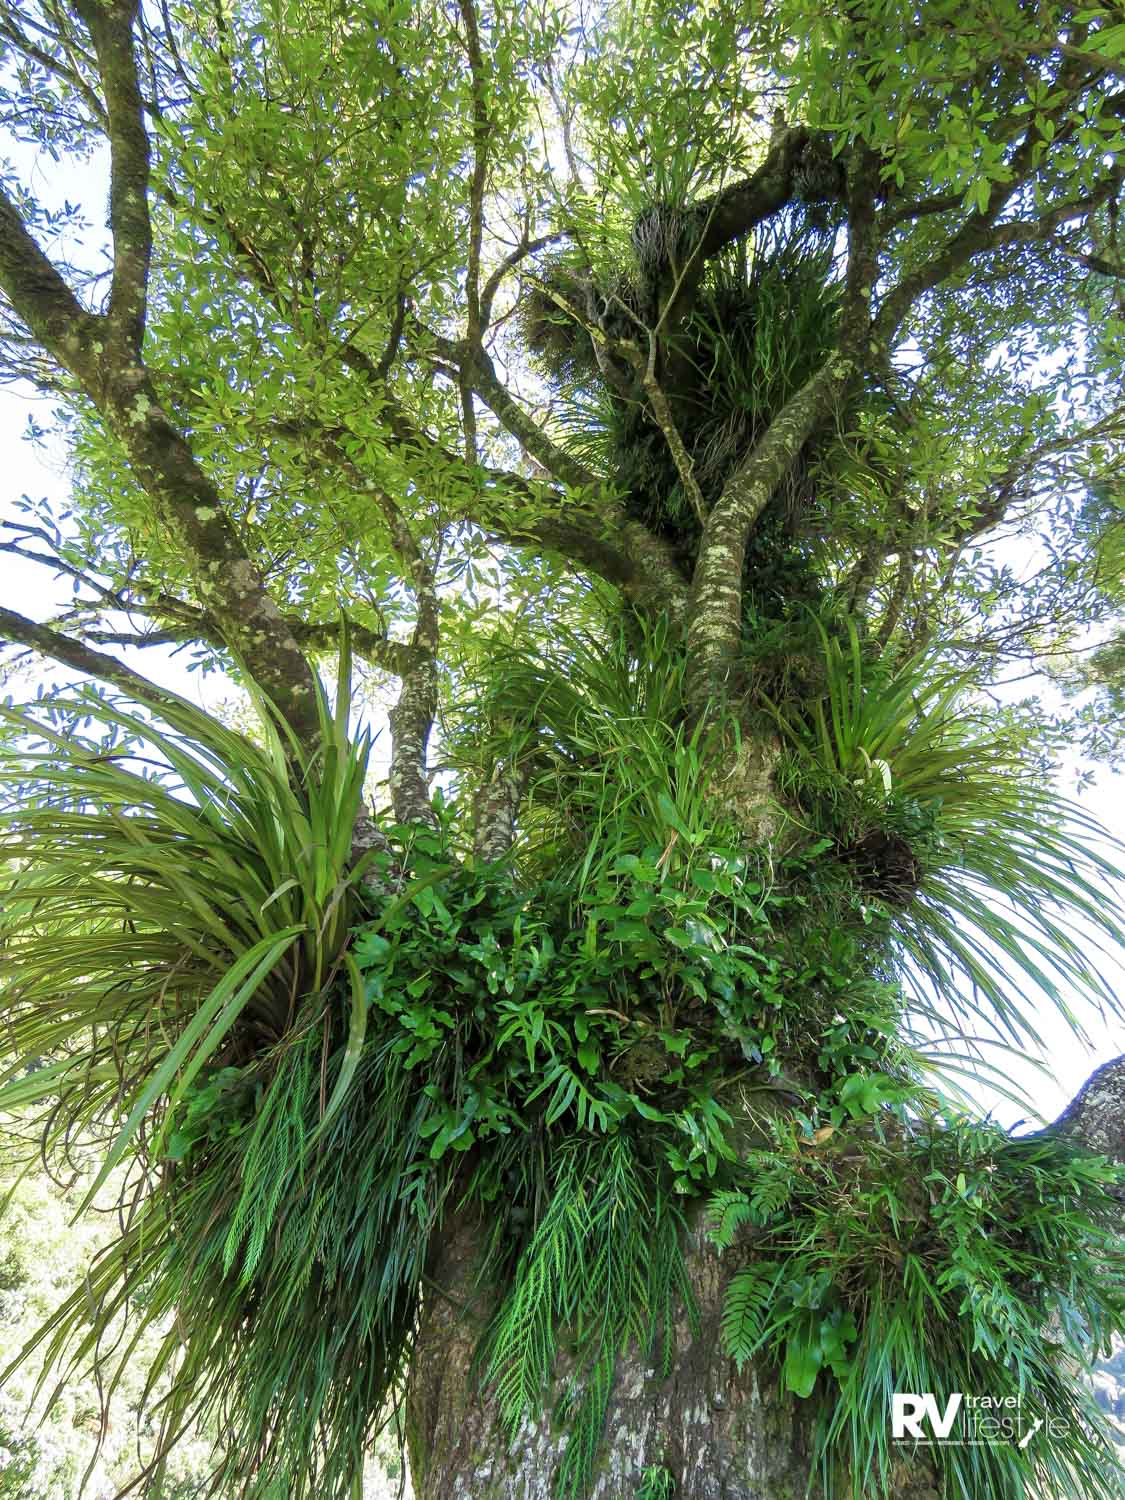 At least four different epiphytes have made a home for themselves on this old tree